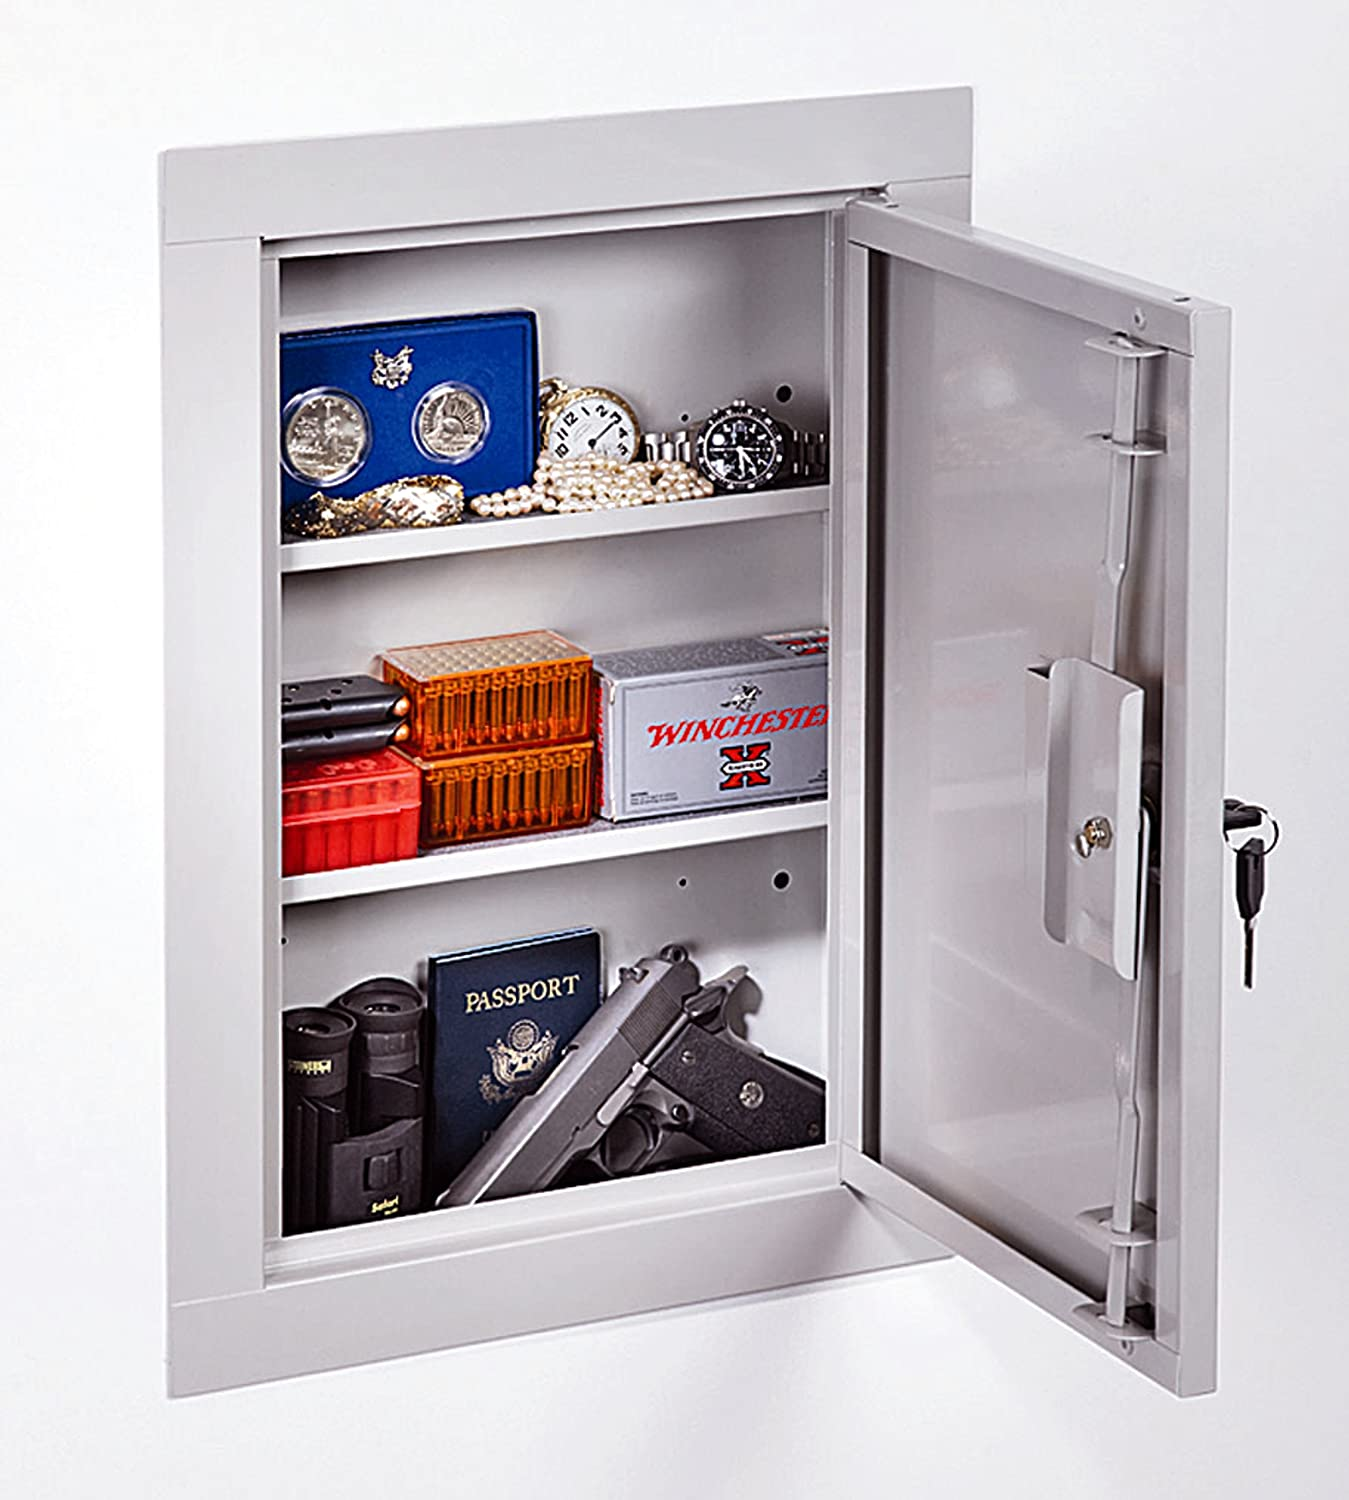 Top 10 Hidden Gun Cabinet Guides and Ideas - GUN STORAGE